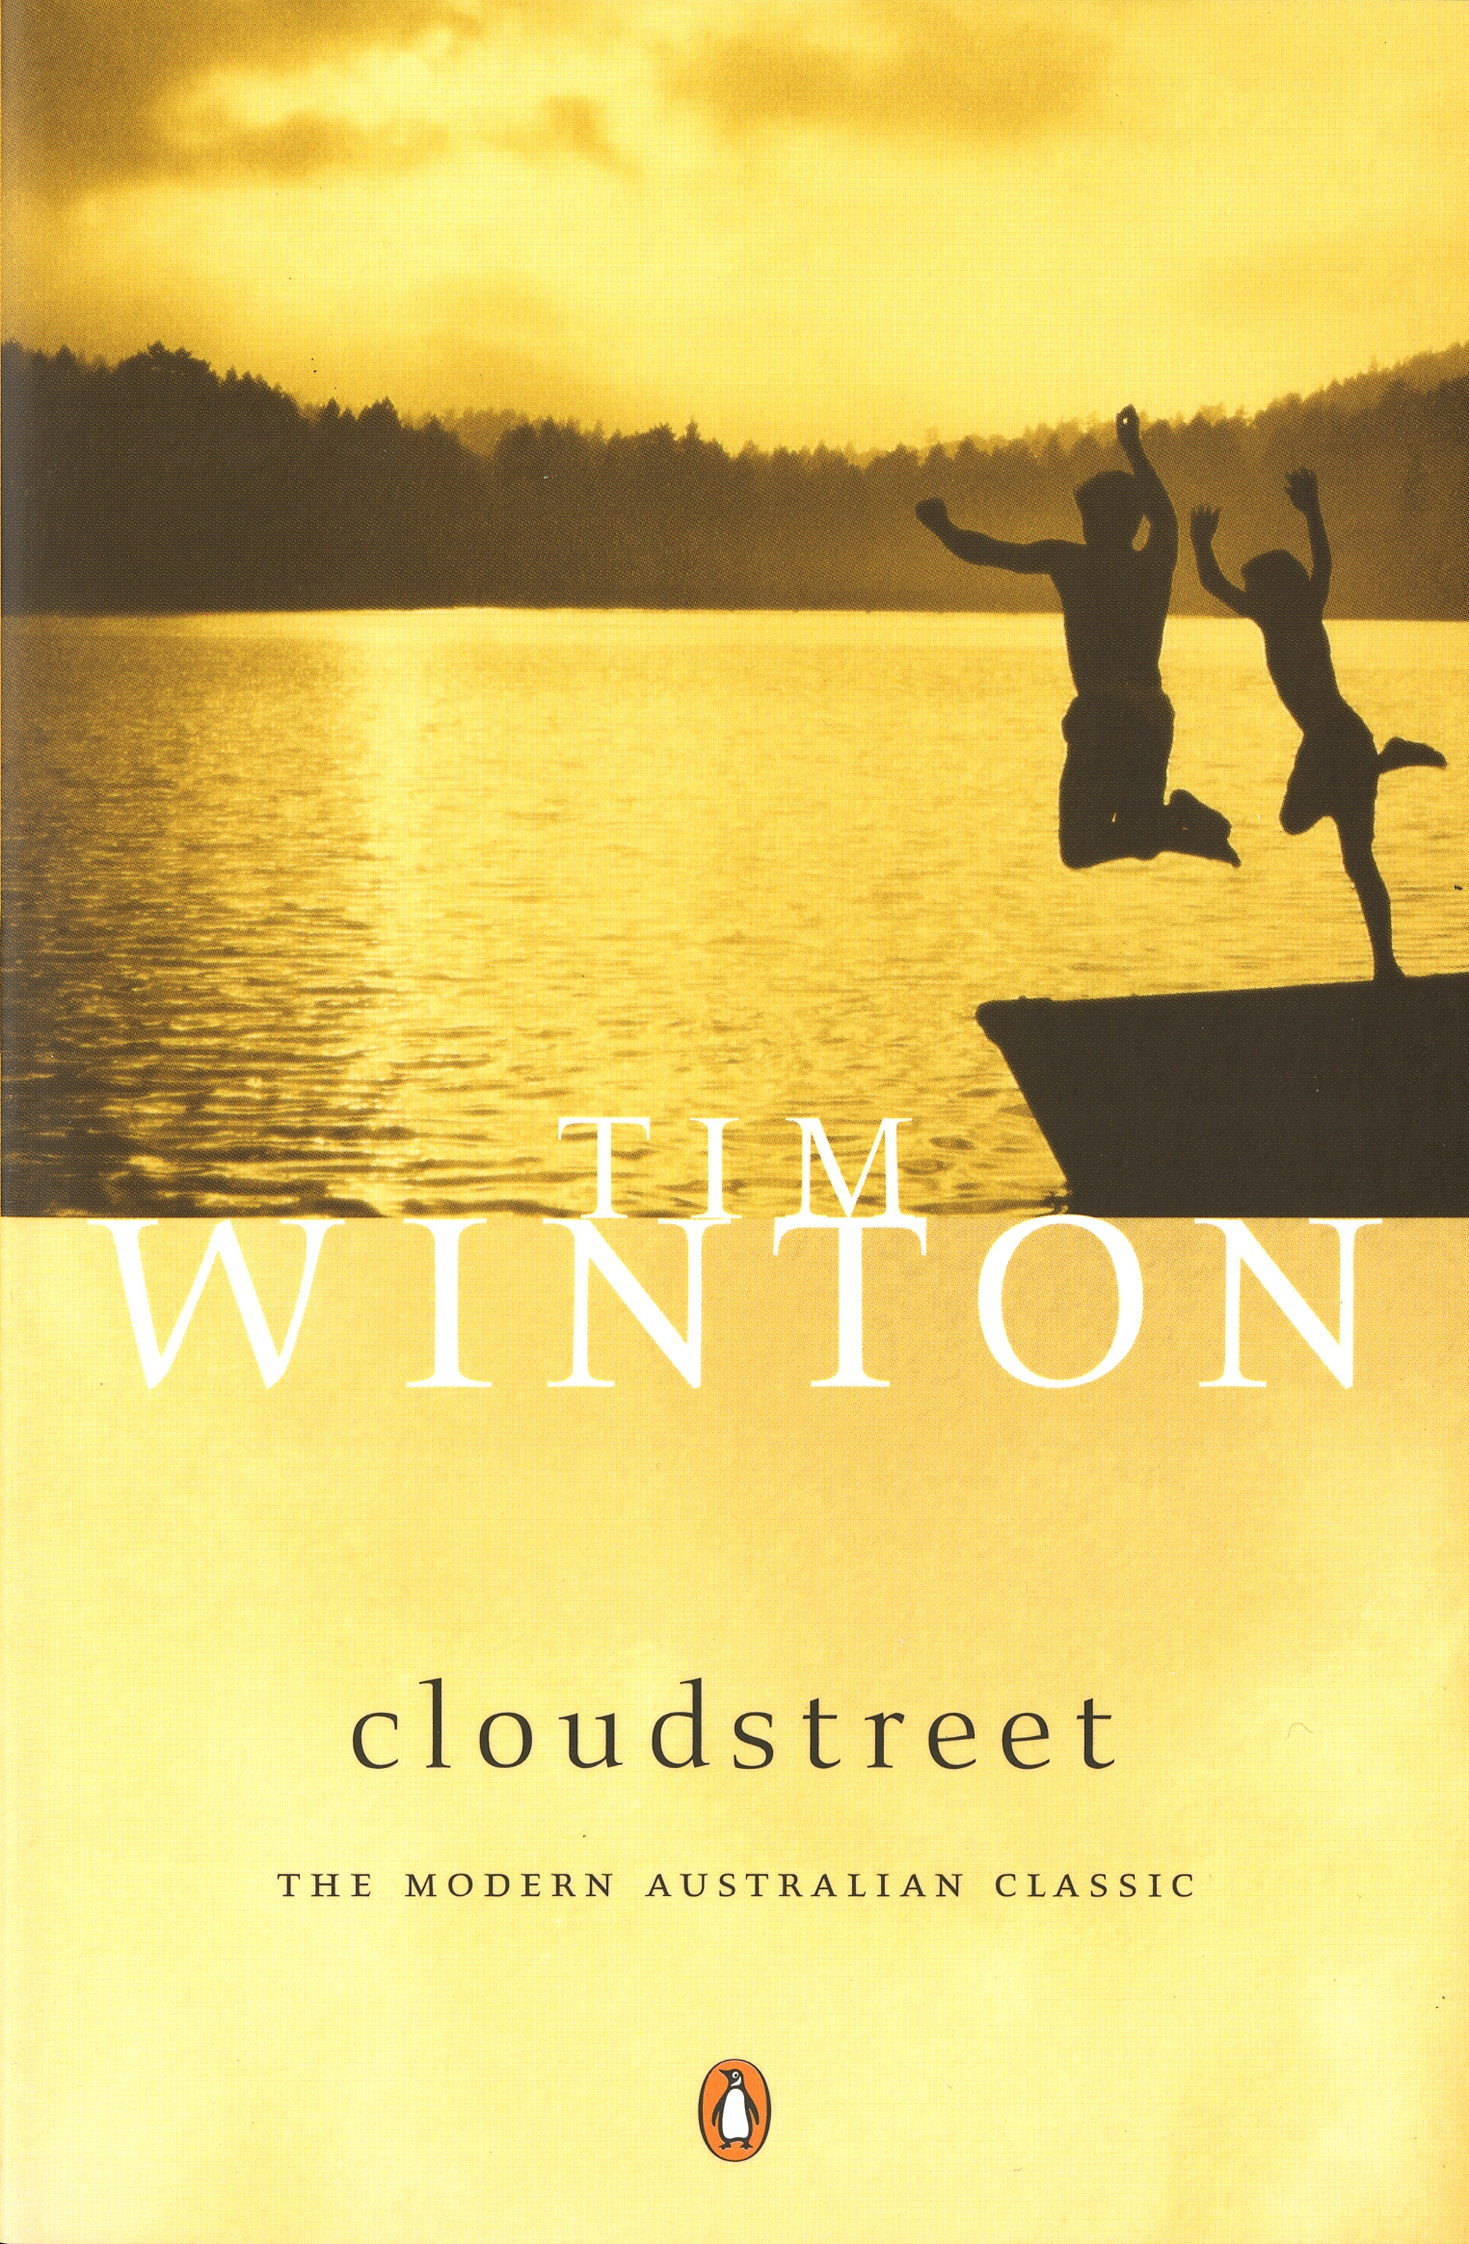 a critique of cloudstreet by tim winton Cloudstreet is a 1991 novel by multi-award winning australian writer tim winton  it chronicles  1 plot summary 2 major themes 3 historical context 4  recognition 5 awards 51 related to cloudstreet 6 adaptations 61 radio 62  stage.